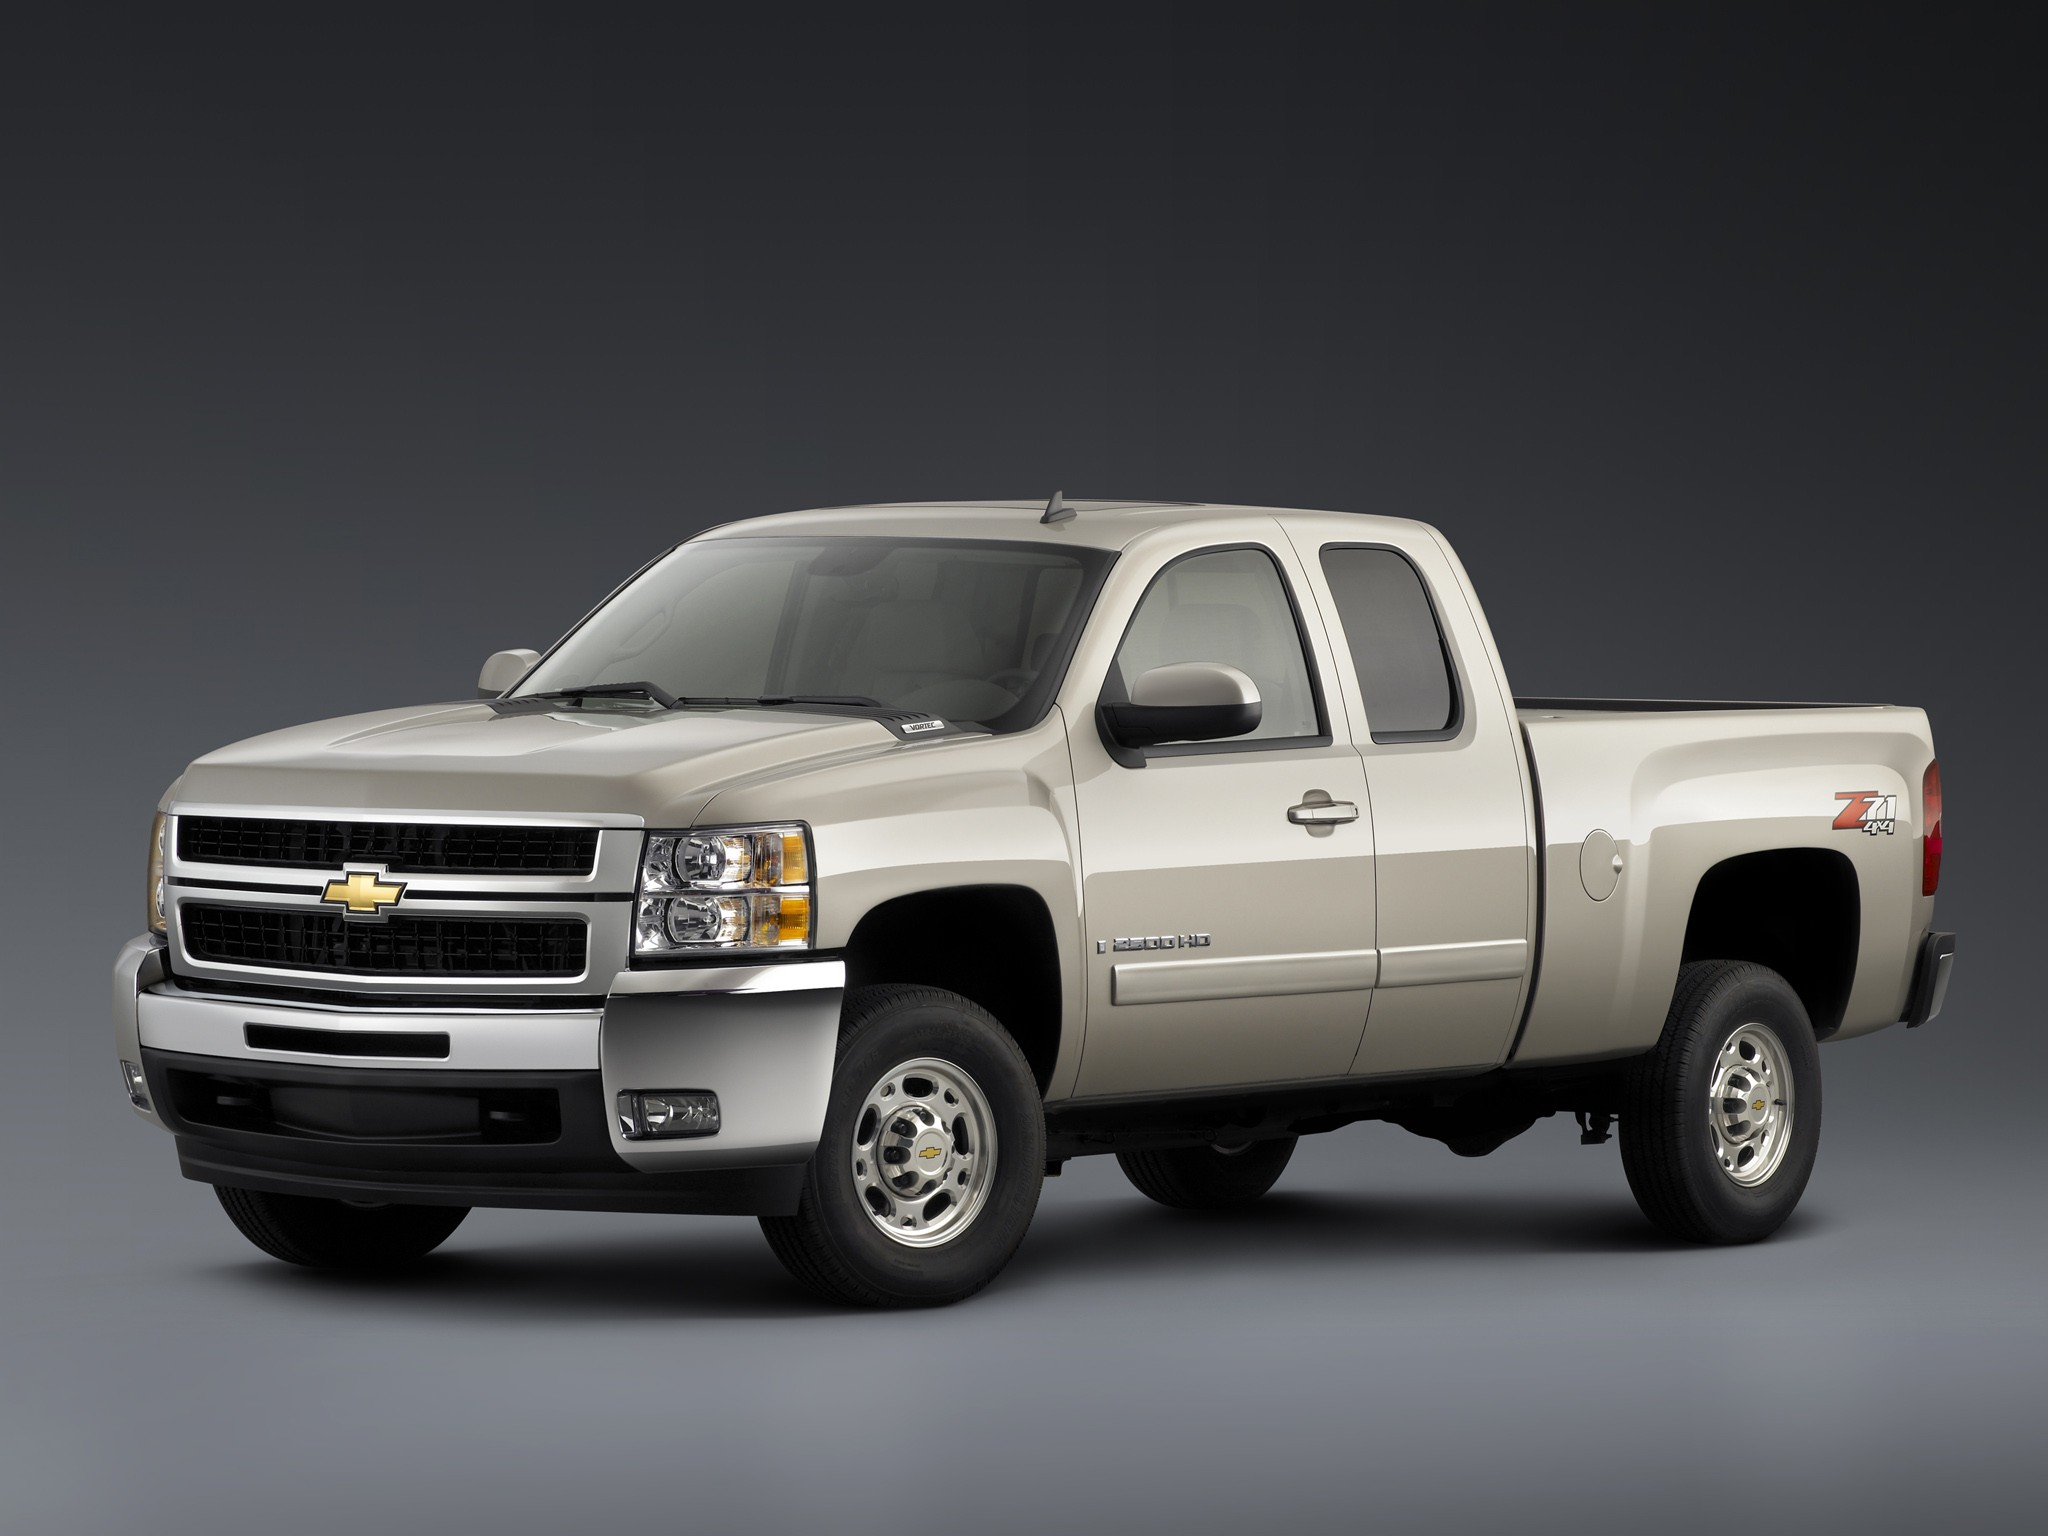 chevrolet silverado 2500hd extended cab 2008 2009 2010. Black Bedroom Furniture Sets. Home Design Ideas